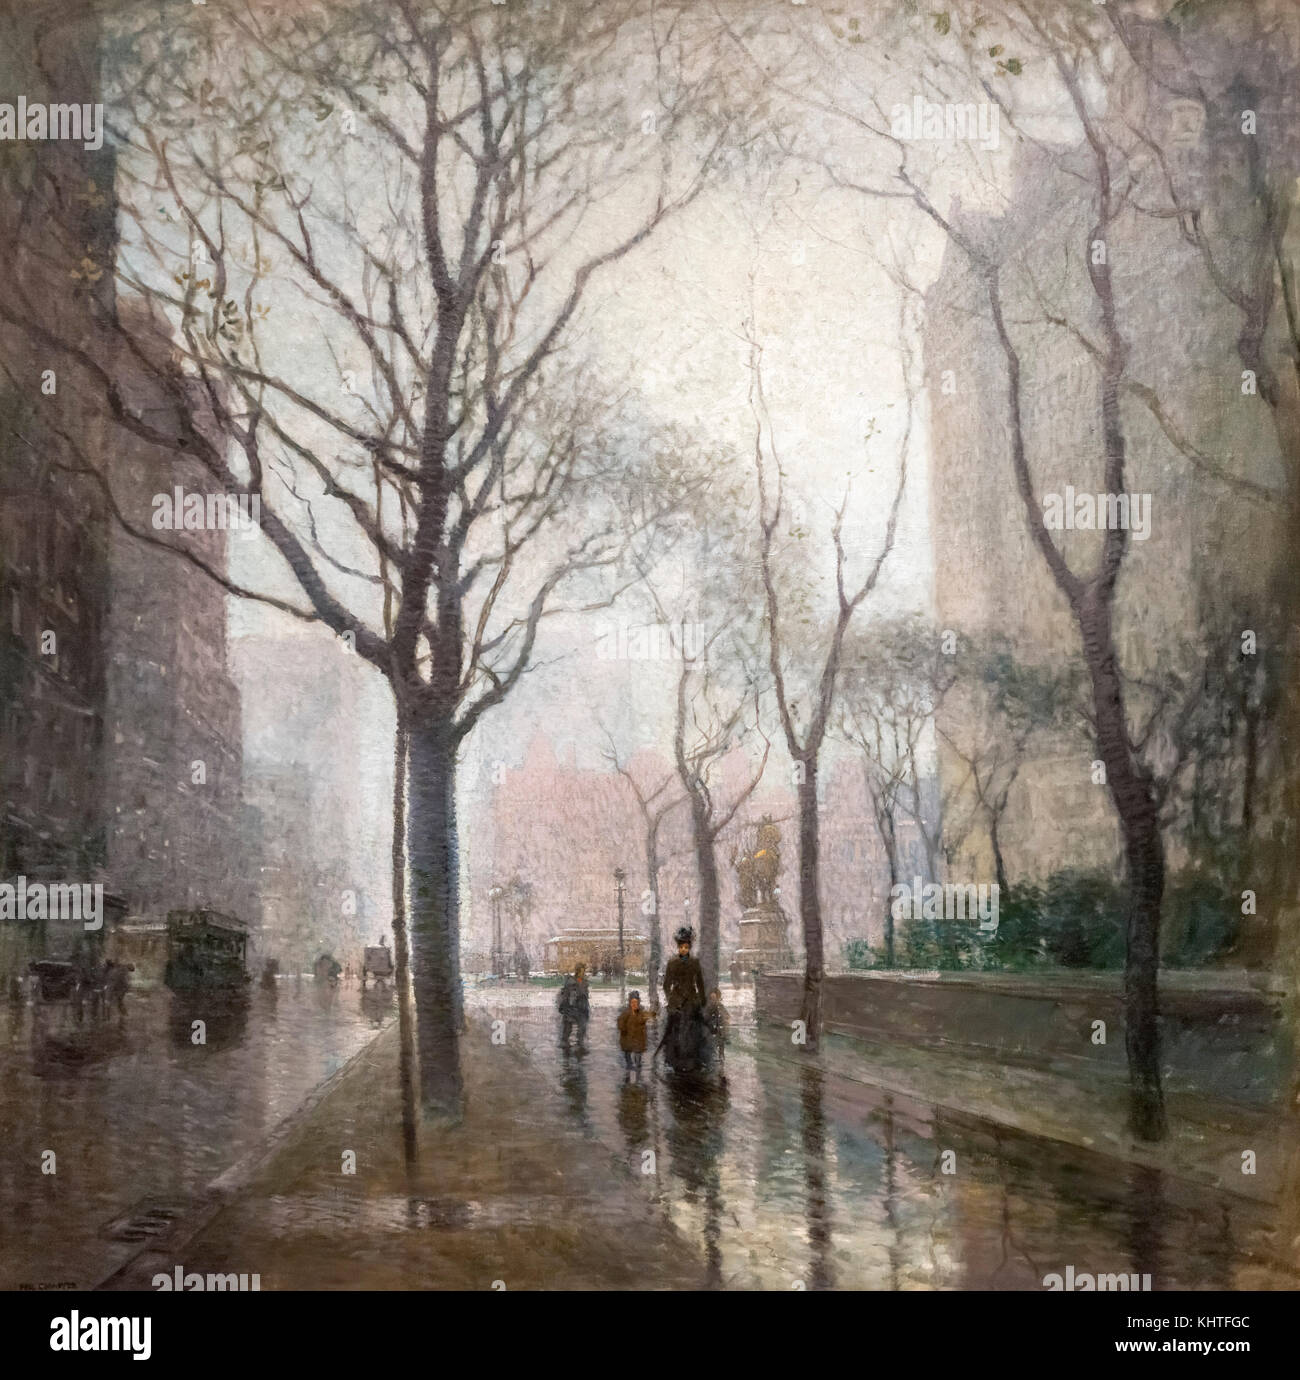 The Plaza after the Rain by Paul Cornoyer (1864-1923), oil on canvas, 1908 - Stock Image